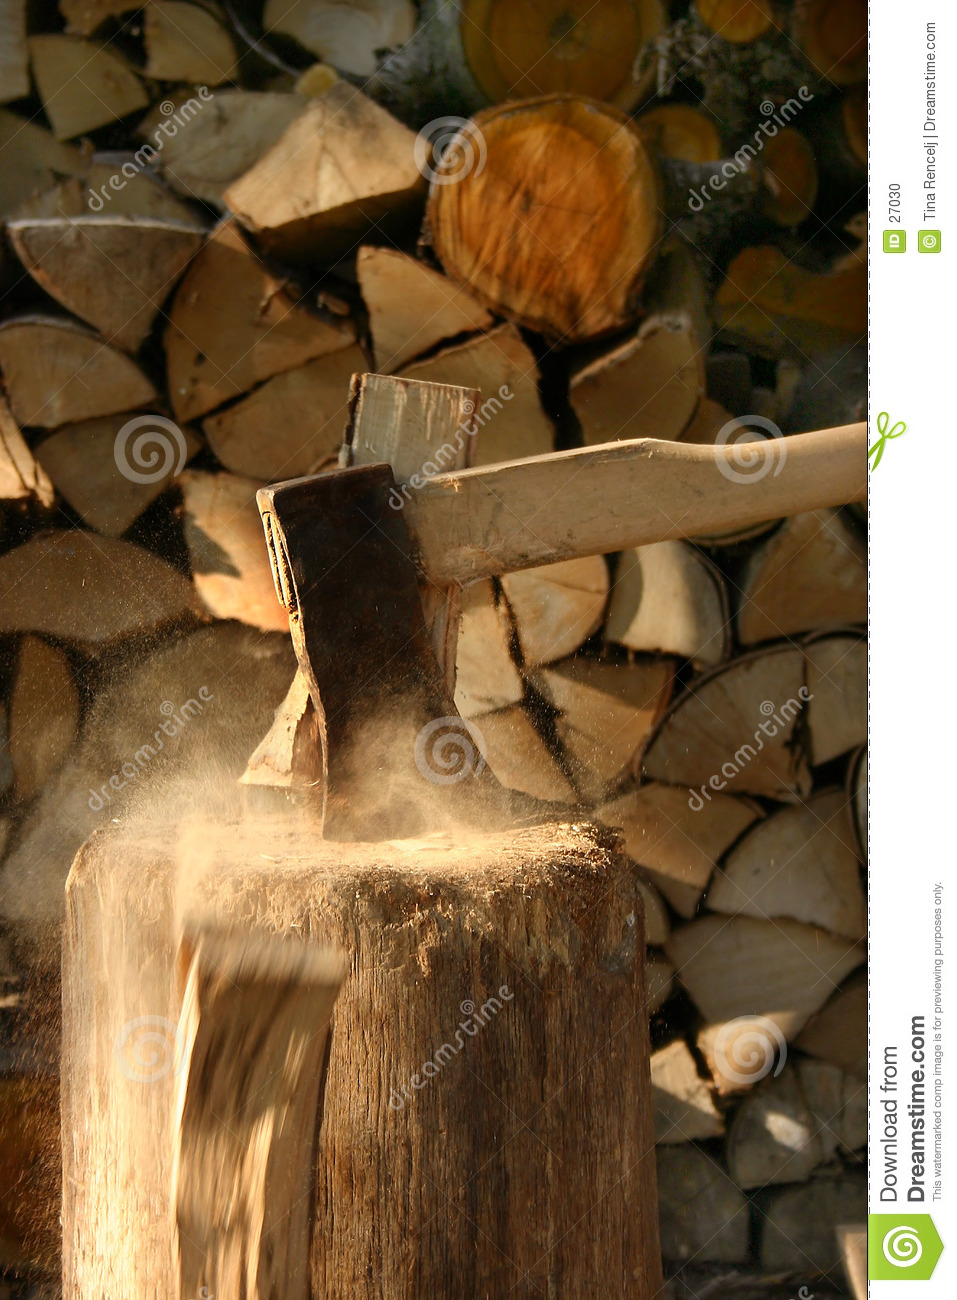 Axe in action